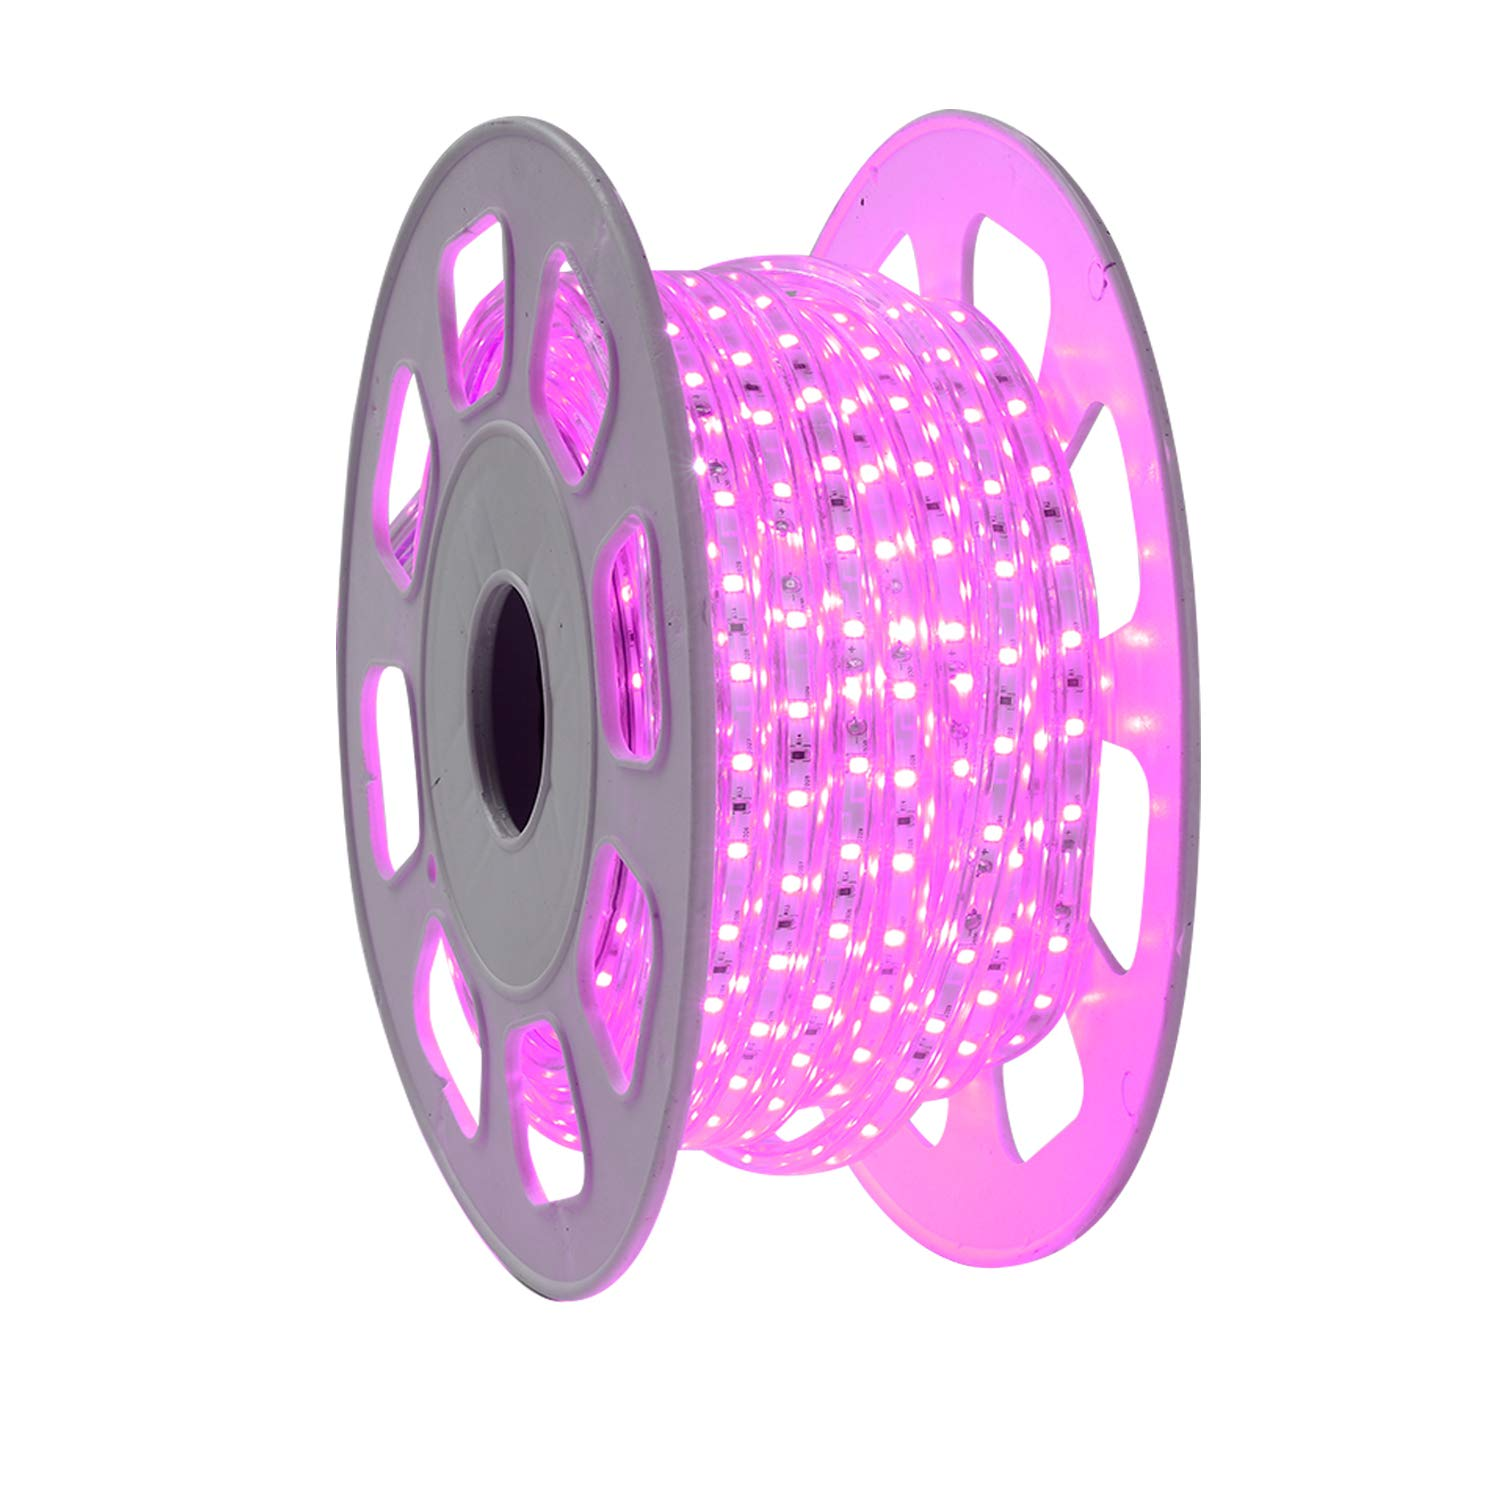 Shine Decor 7x10mm LED Strip Lights, 110V Dimmable Flexible Waterproof Rope Lights, 60LEDs/M, for Indoor Outdoor Ambient Commercial Lighting Decoration, Accessories Included, 50ft Pink Purple